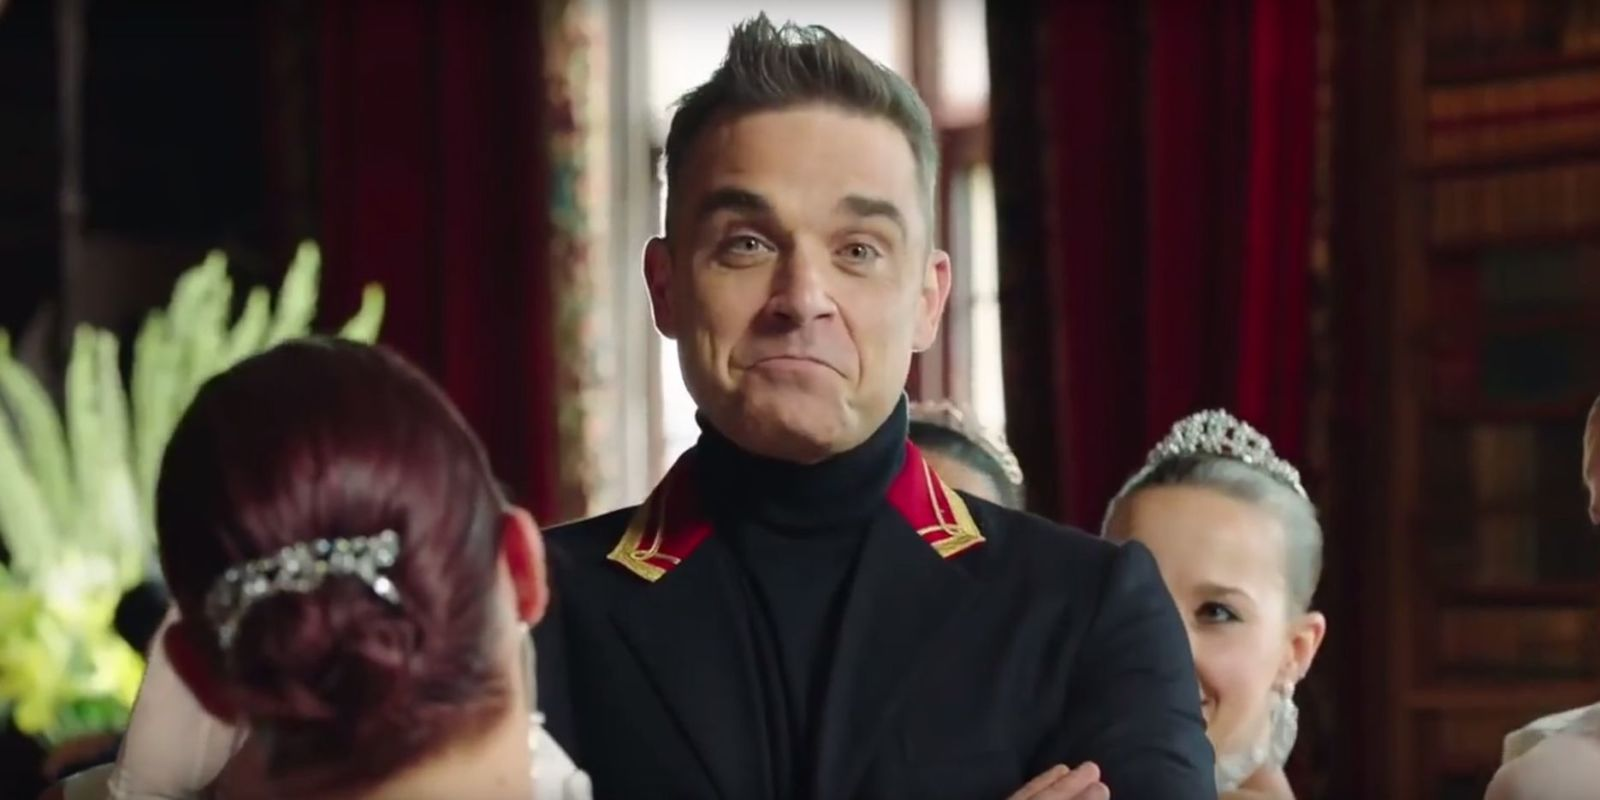 Robbie Williams gets his revenge on Take That, becoming a drug addict 12/10/2009 82